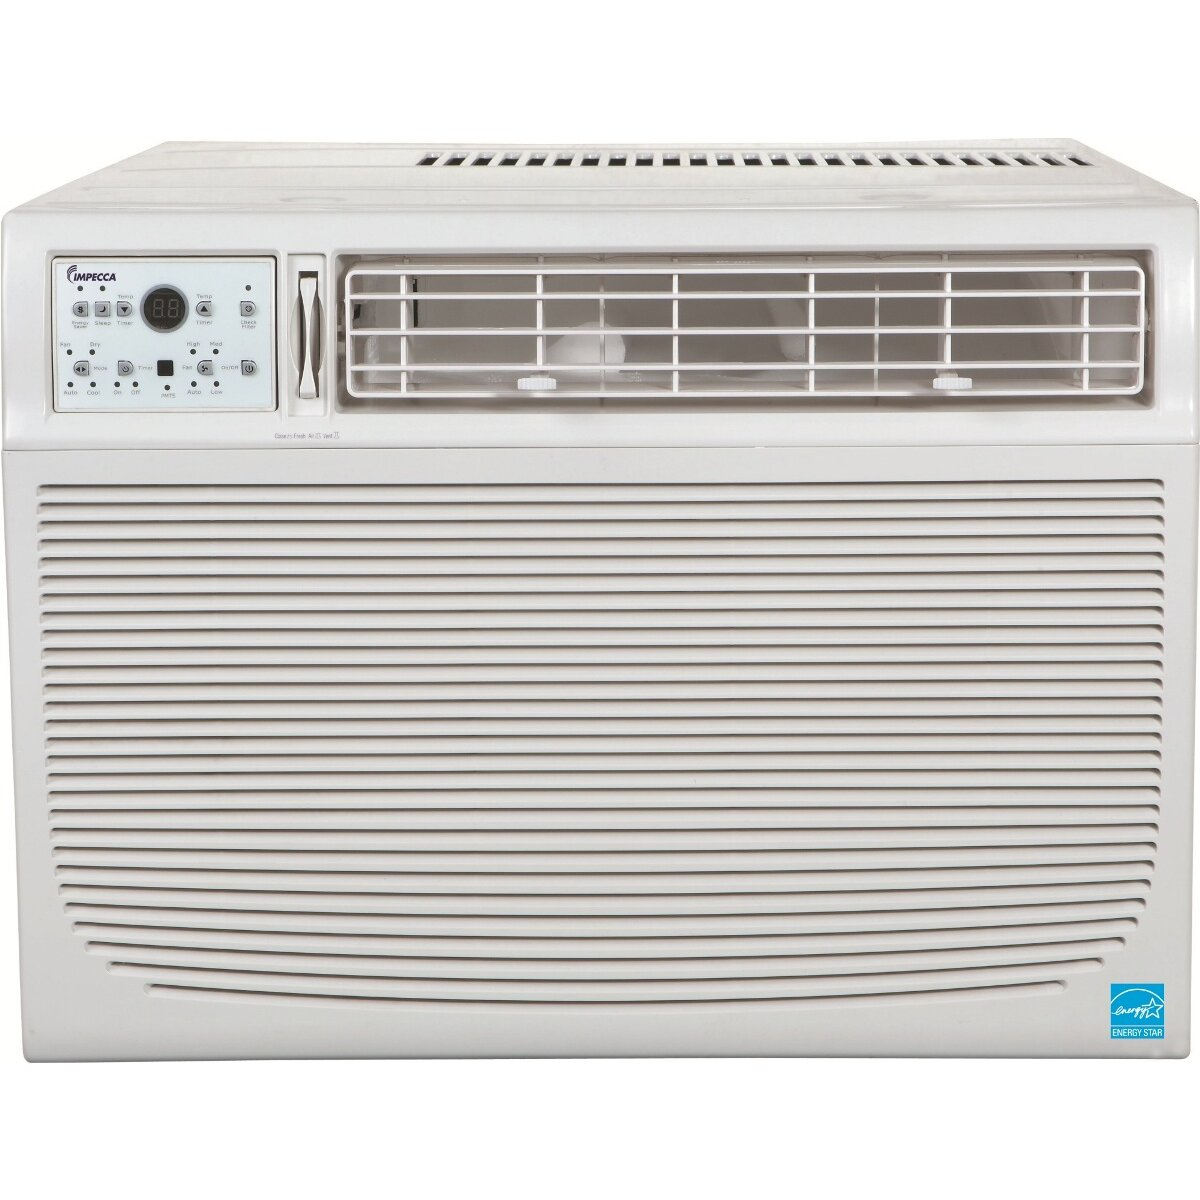 Impecca 15000 btu compact window air conditioner wayfair for 15 width window air conditioner